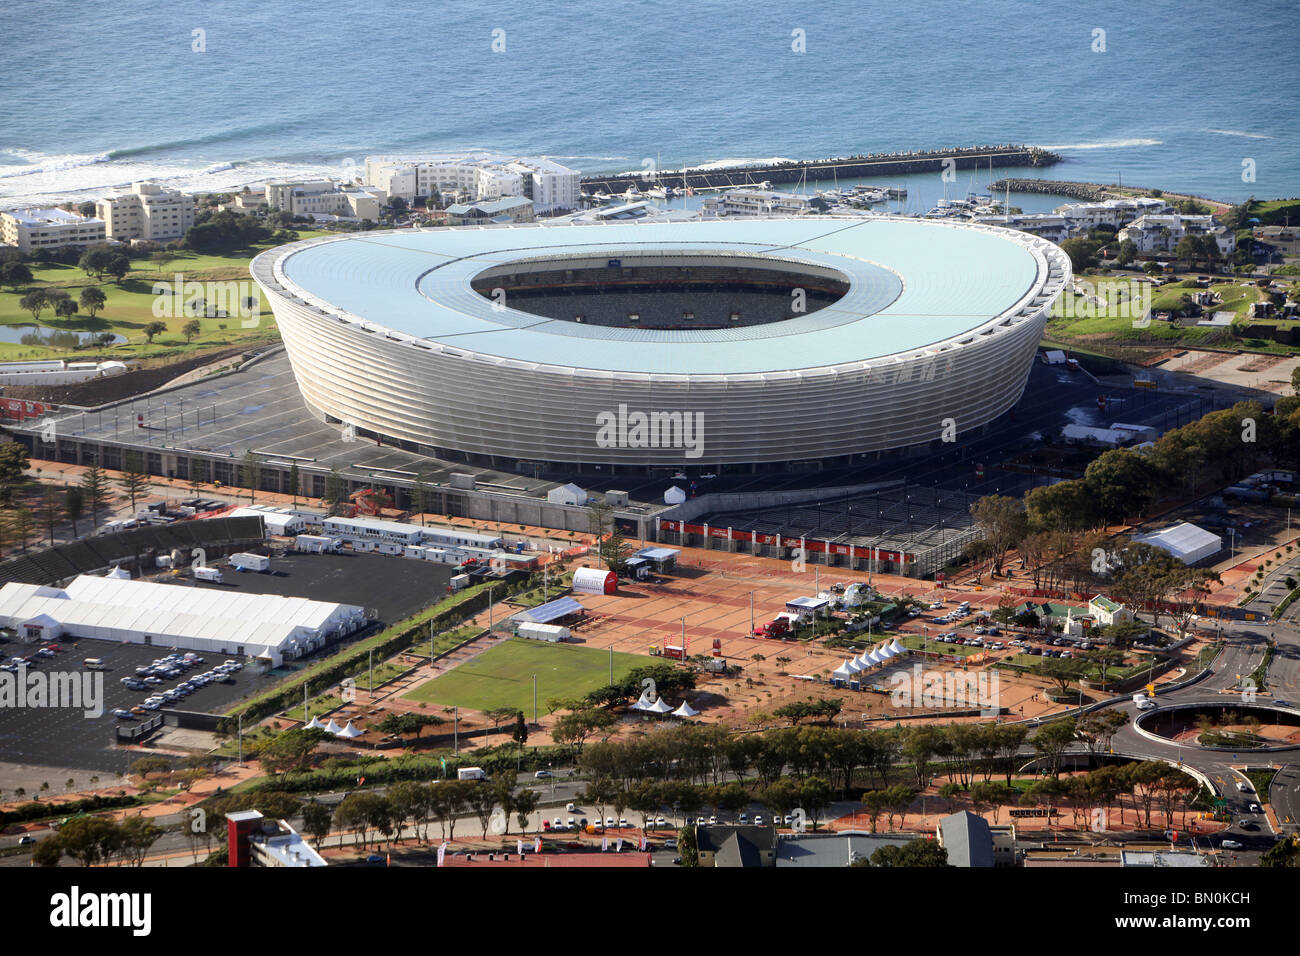 Cape Town, Green Point Stadium - Stock Image